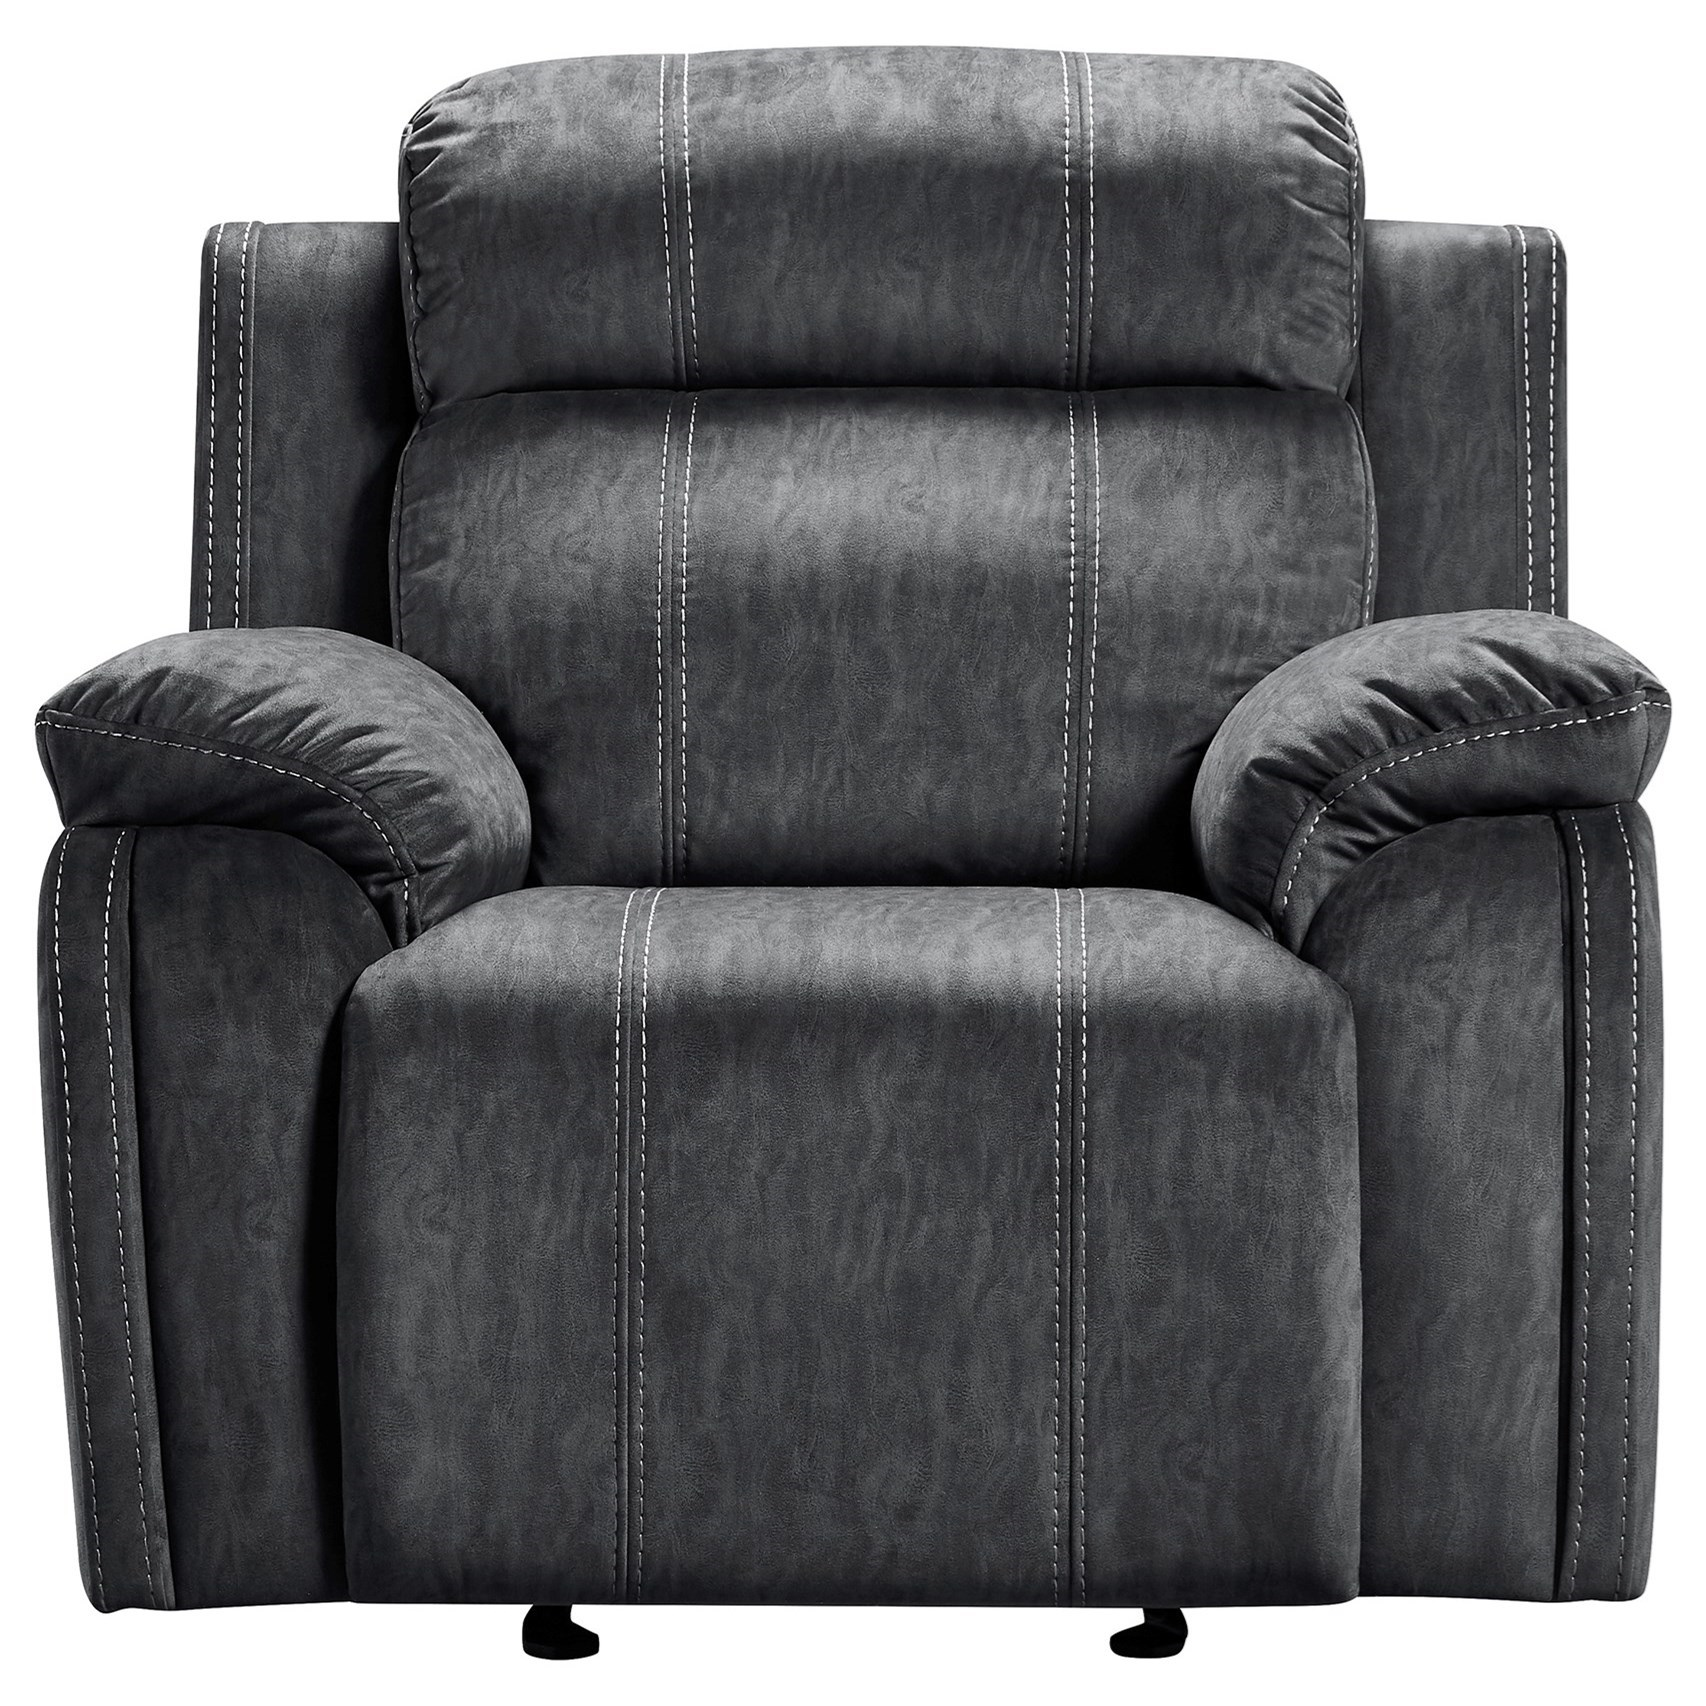 Tango Glider Recliner by New Classic at Rife's Home Furniture